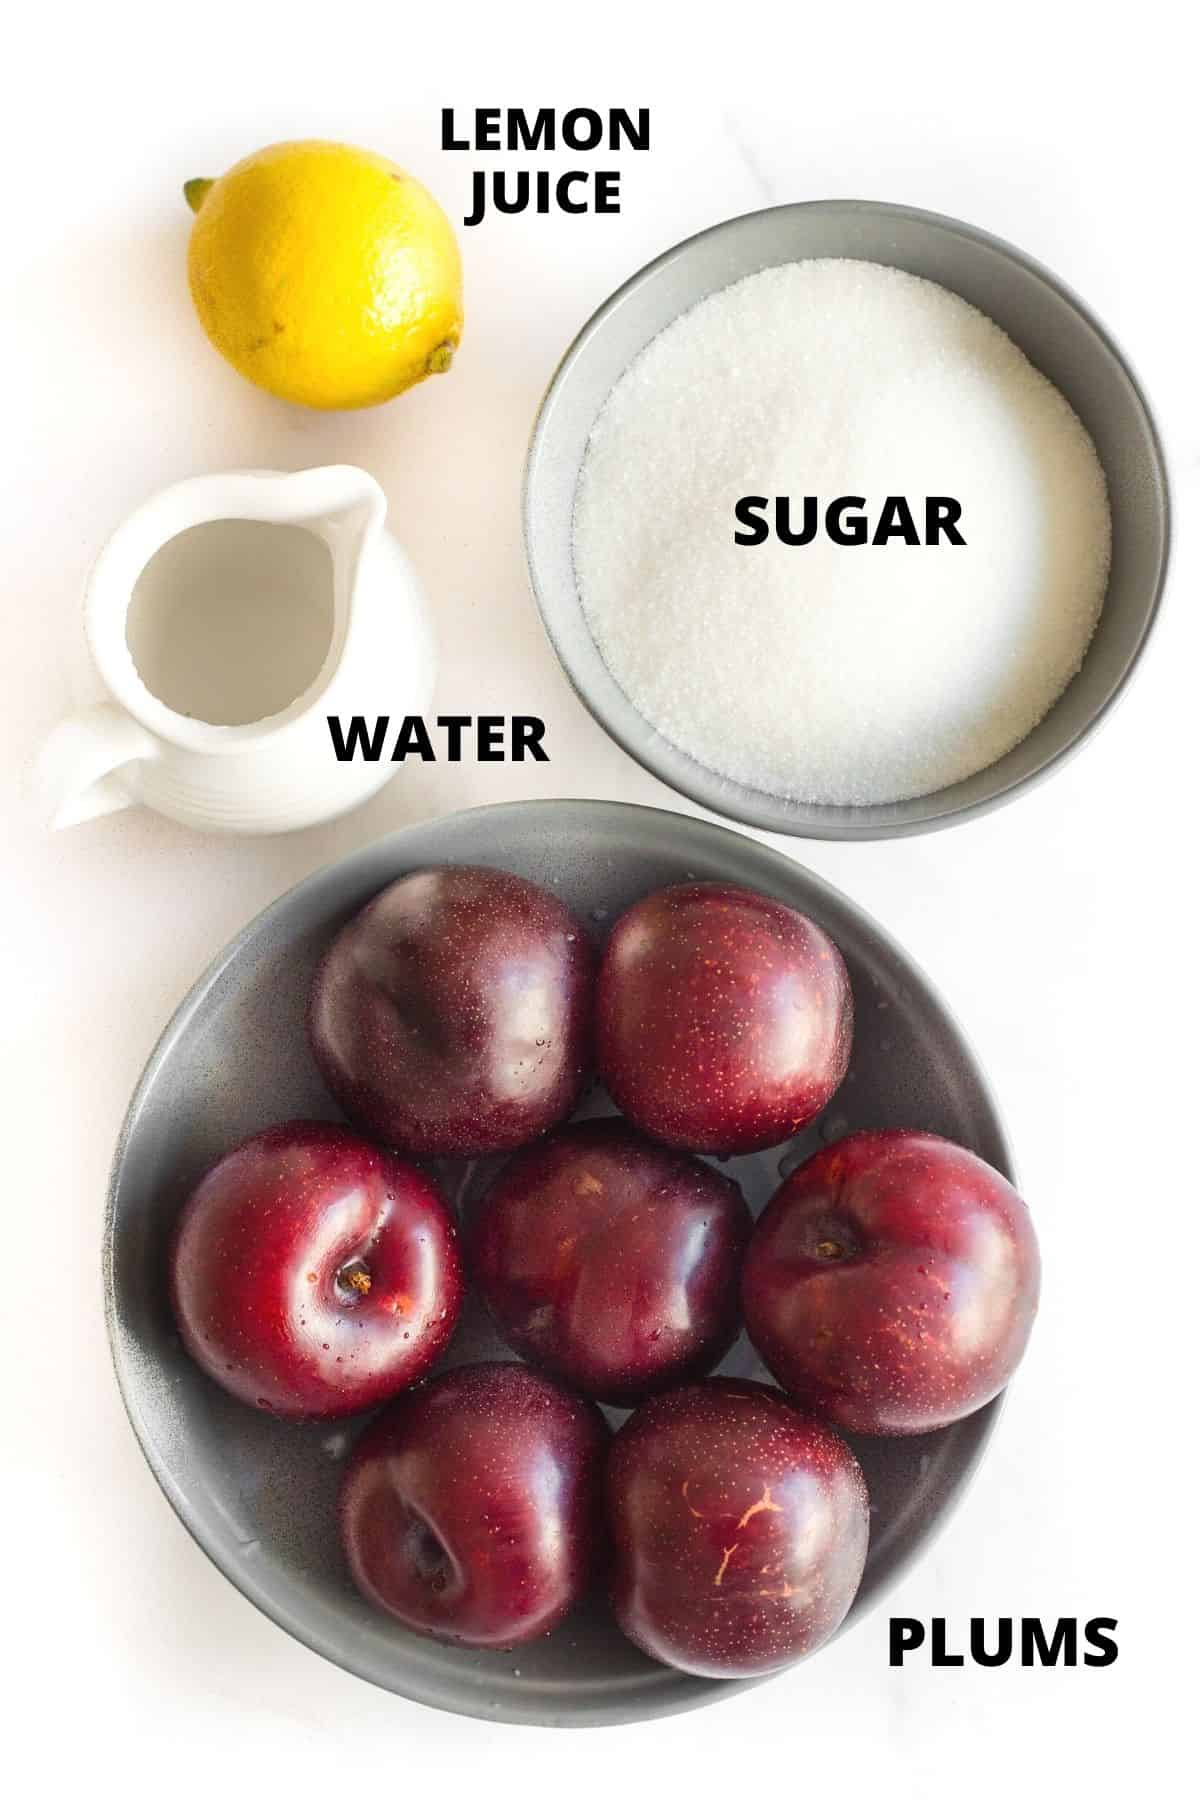 Labeled ingredients required for making easy plum jam recipe.